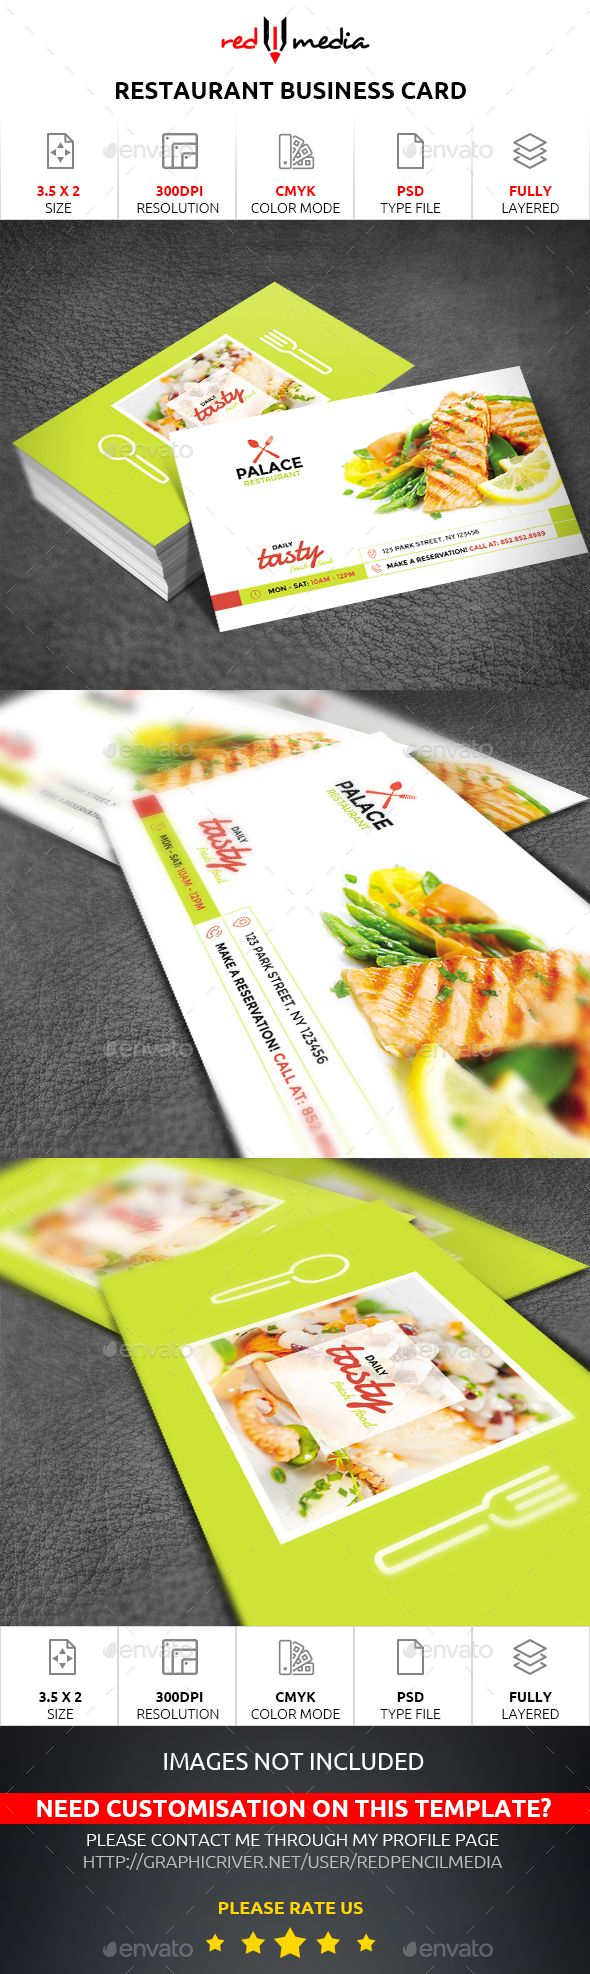 Restaurant Business Card — Photoshop PSD #taste #vegetables • Available here → https://graphicriver.net/item/restaurant-business-card/19301740?ref=pxcr